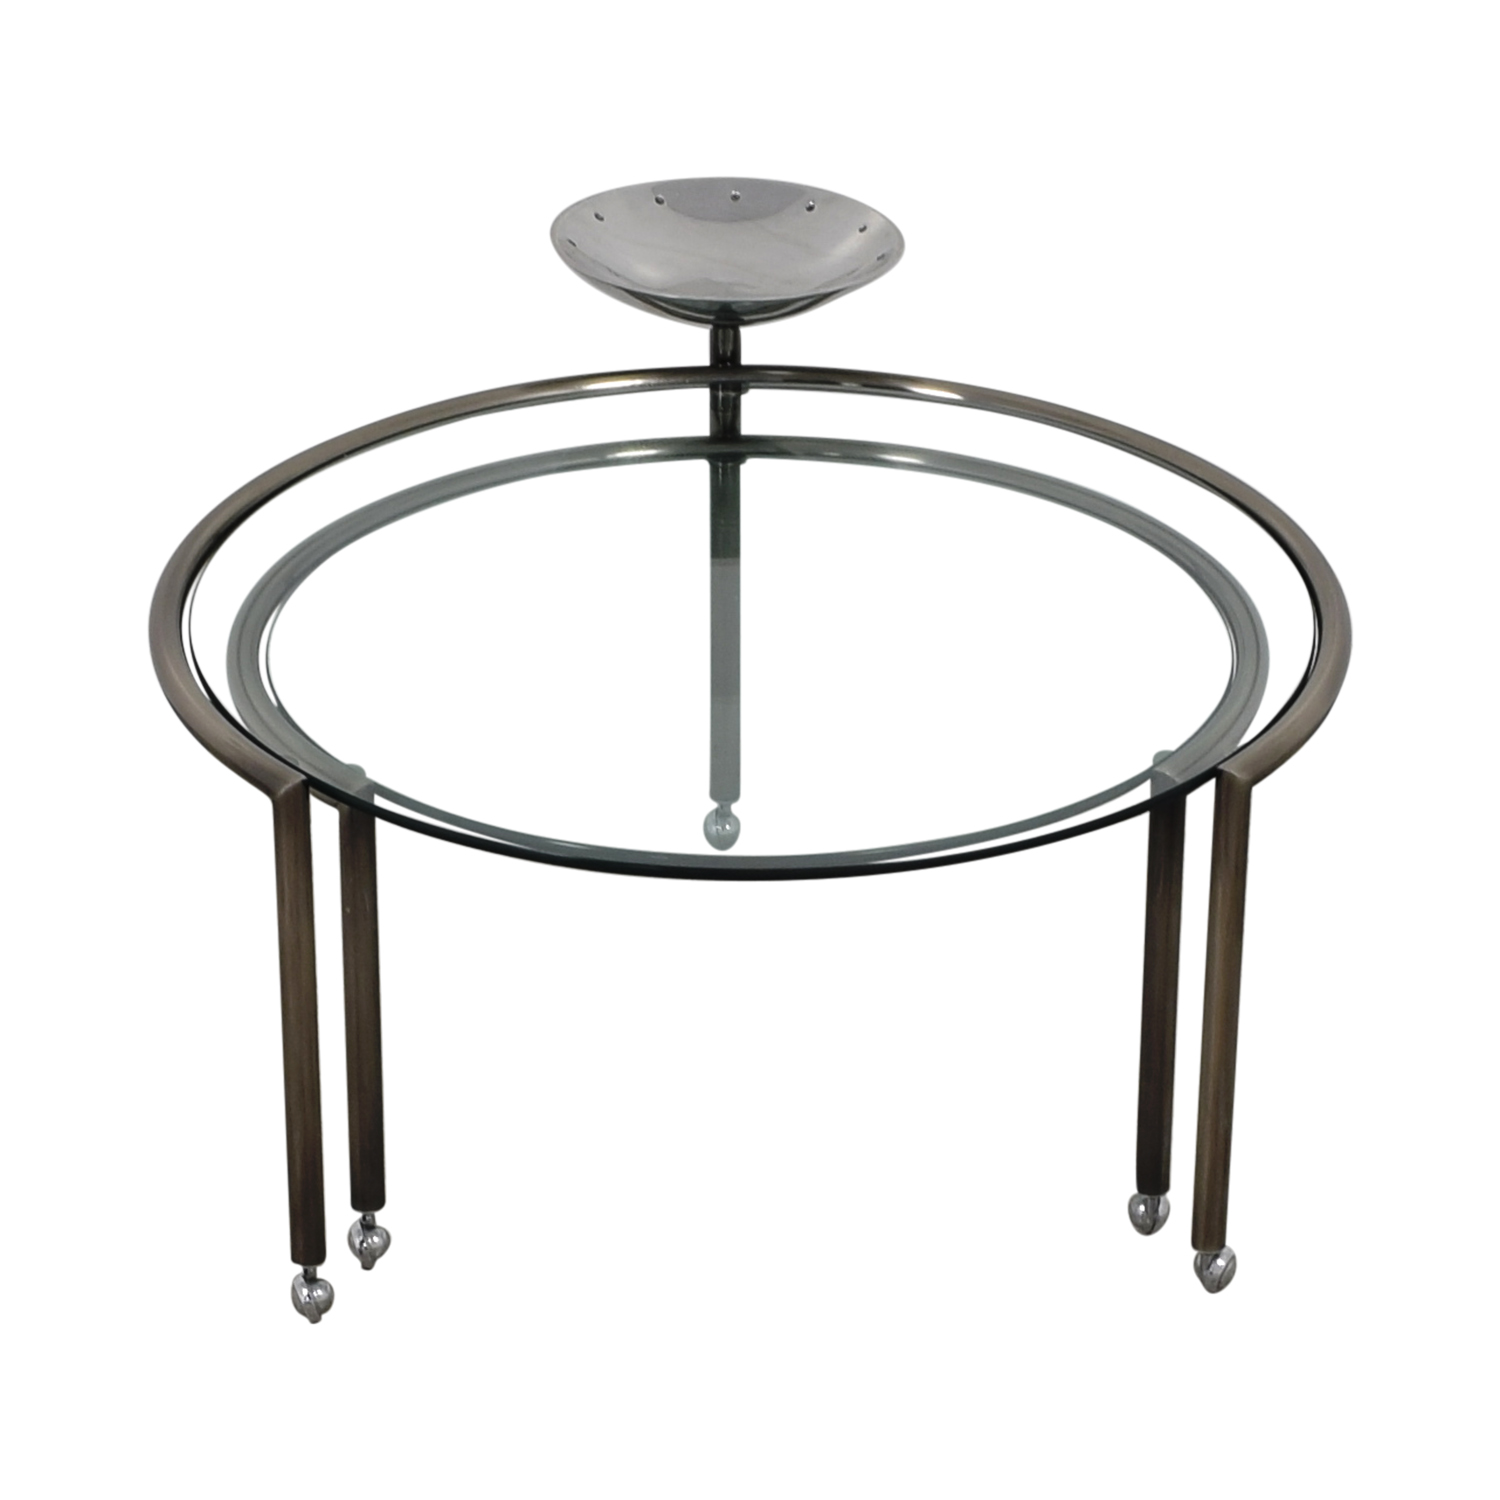 Round Glass Nesting Table with Dish dimensions